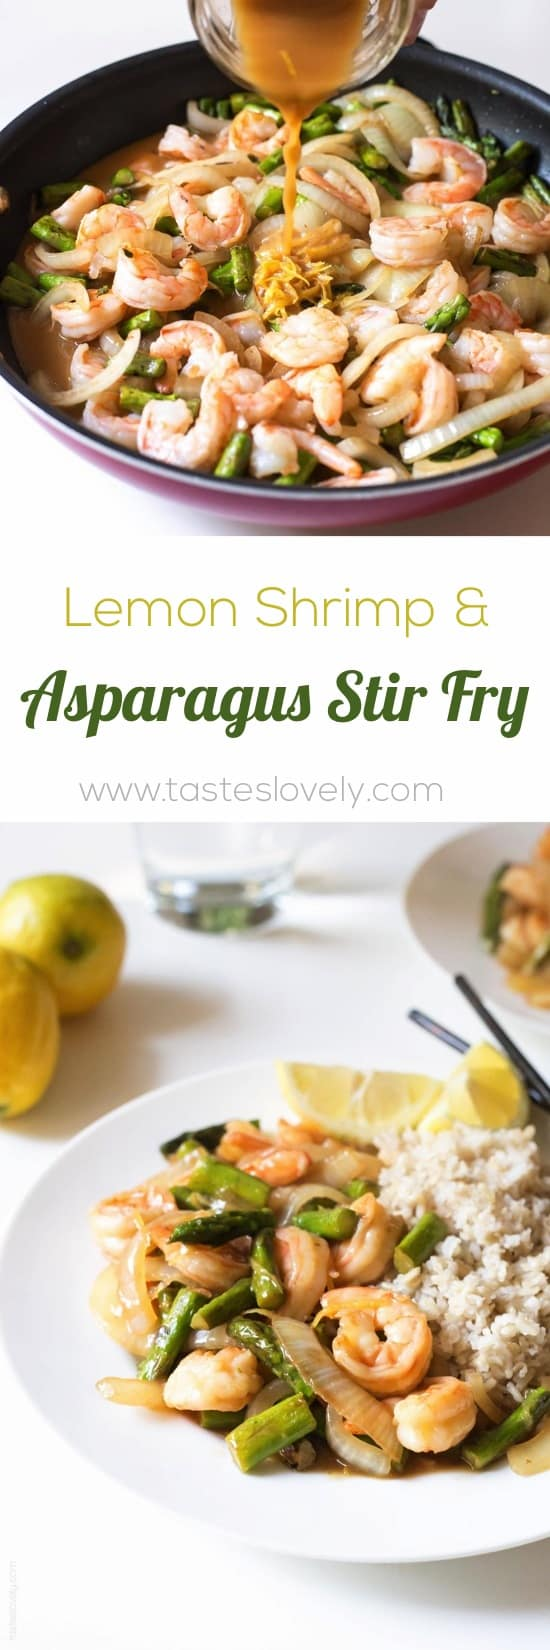 Lemon Shrimp & Asparagus Stir Fry | tasteslovely.com